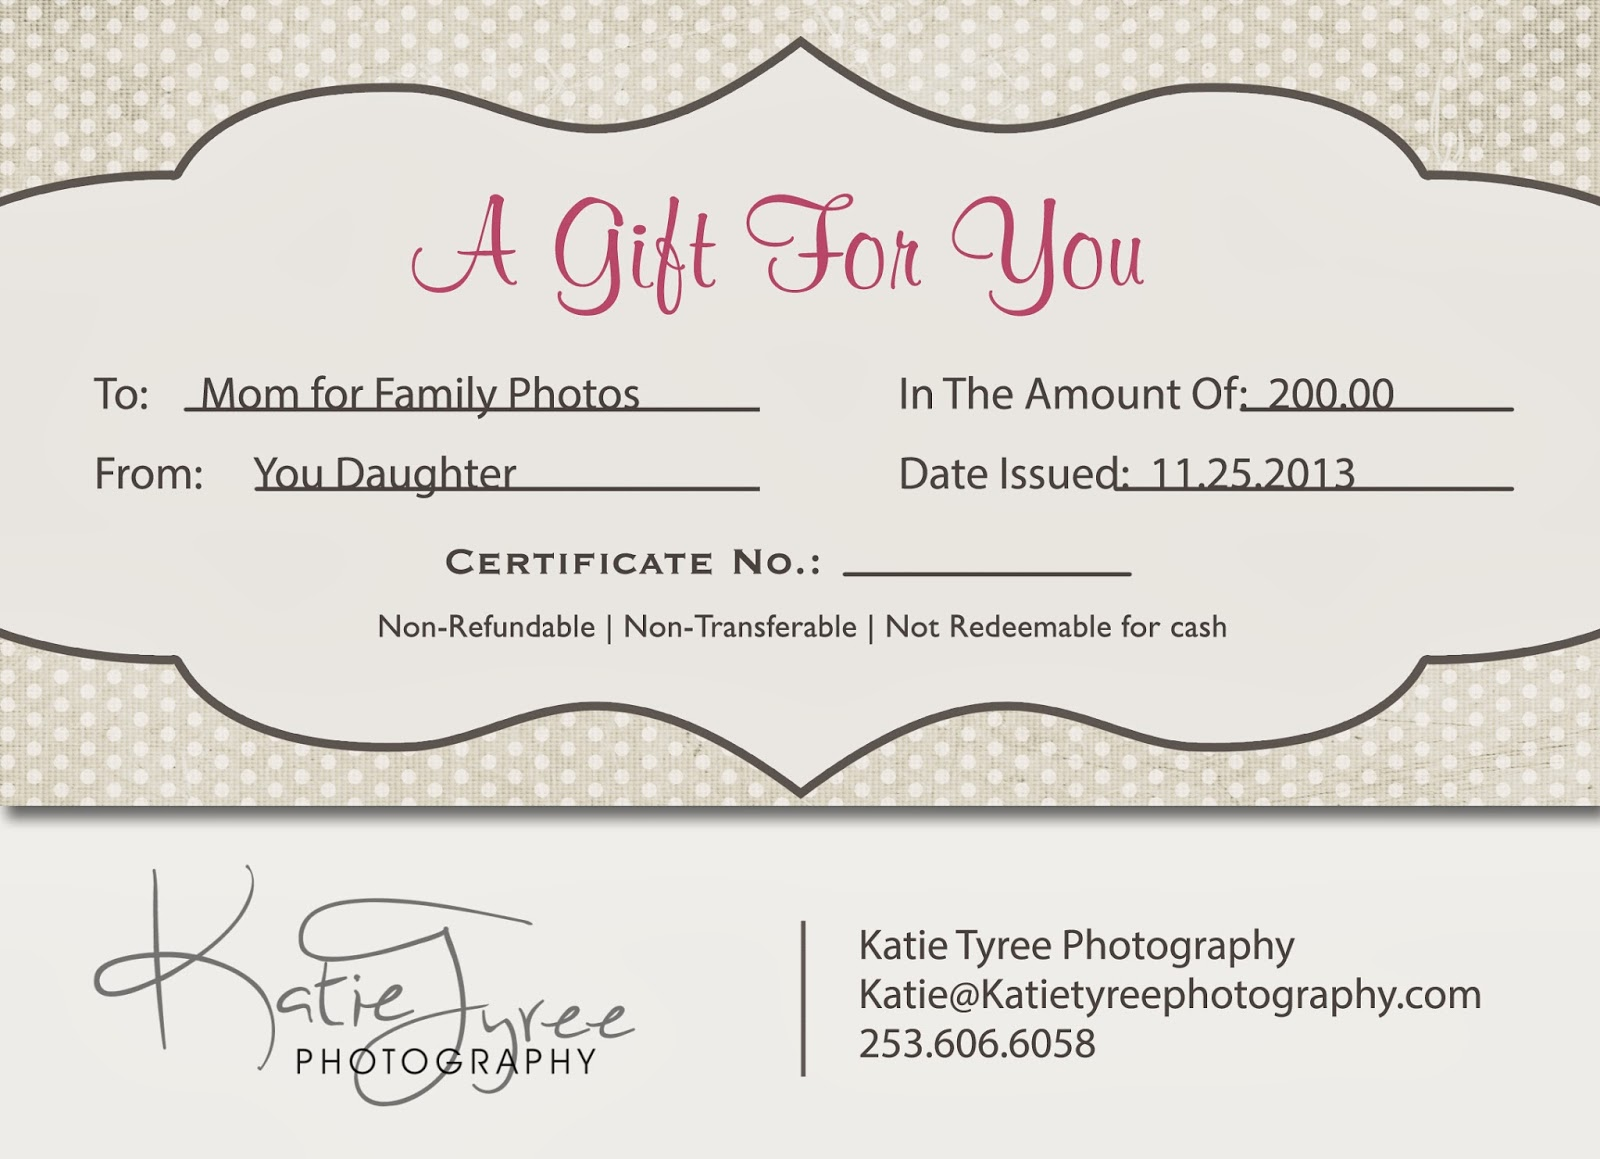 Katie Tyree Photography Best Christmas Present 2013